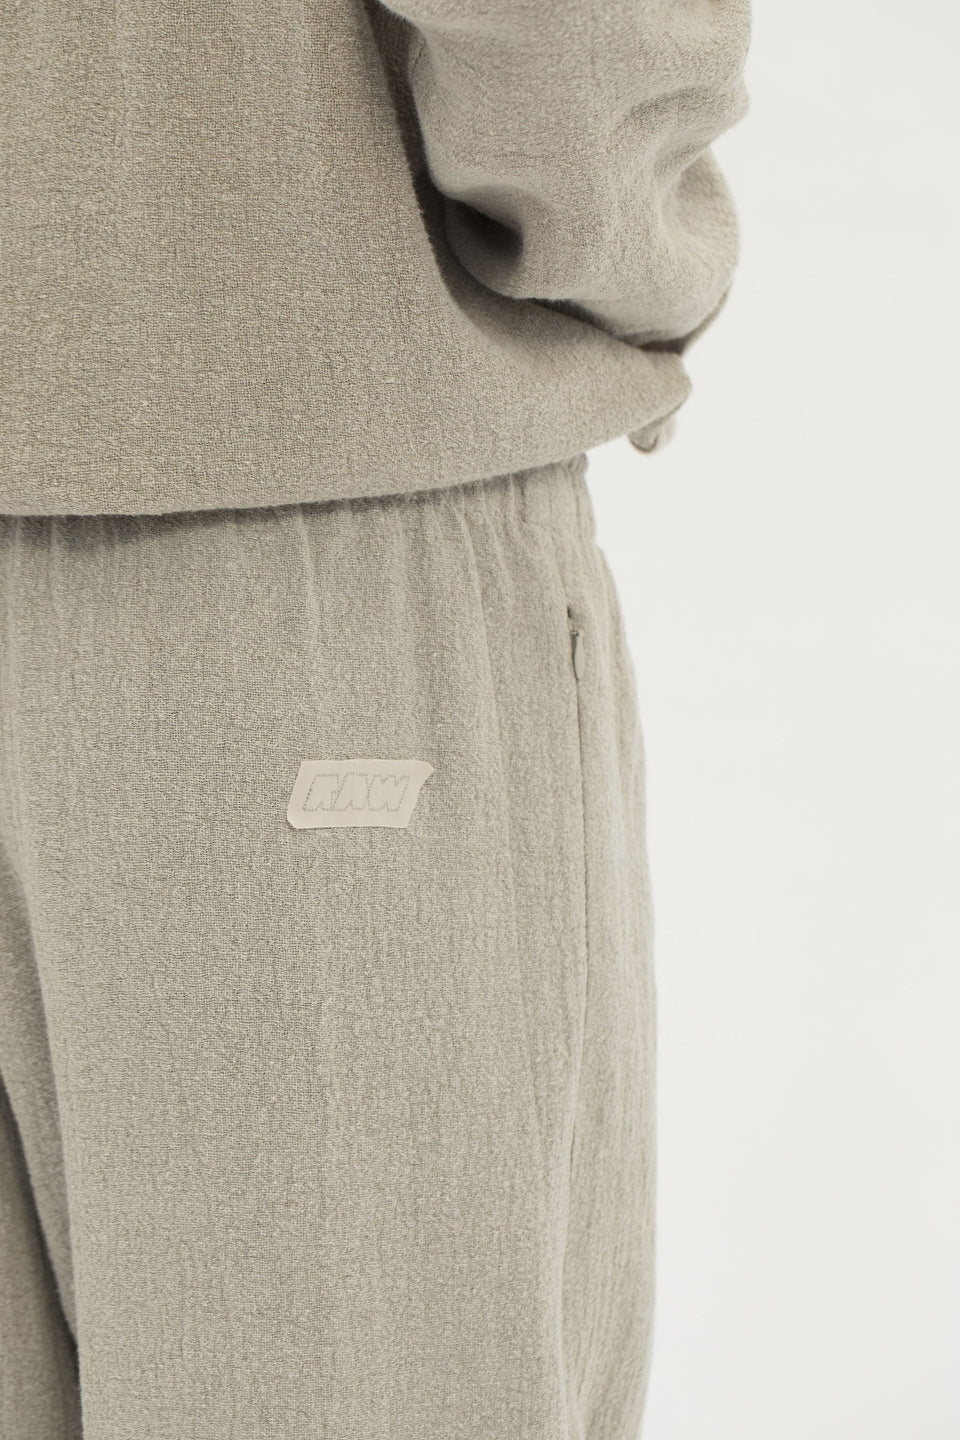 RAW Men Sweatpants Natural